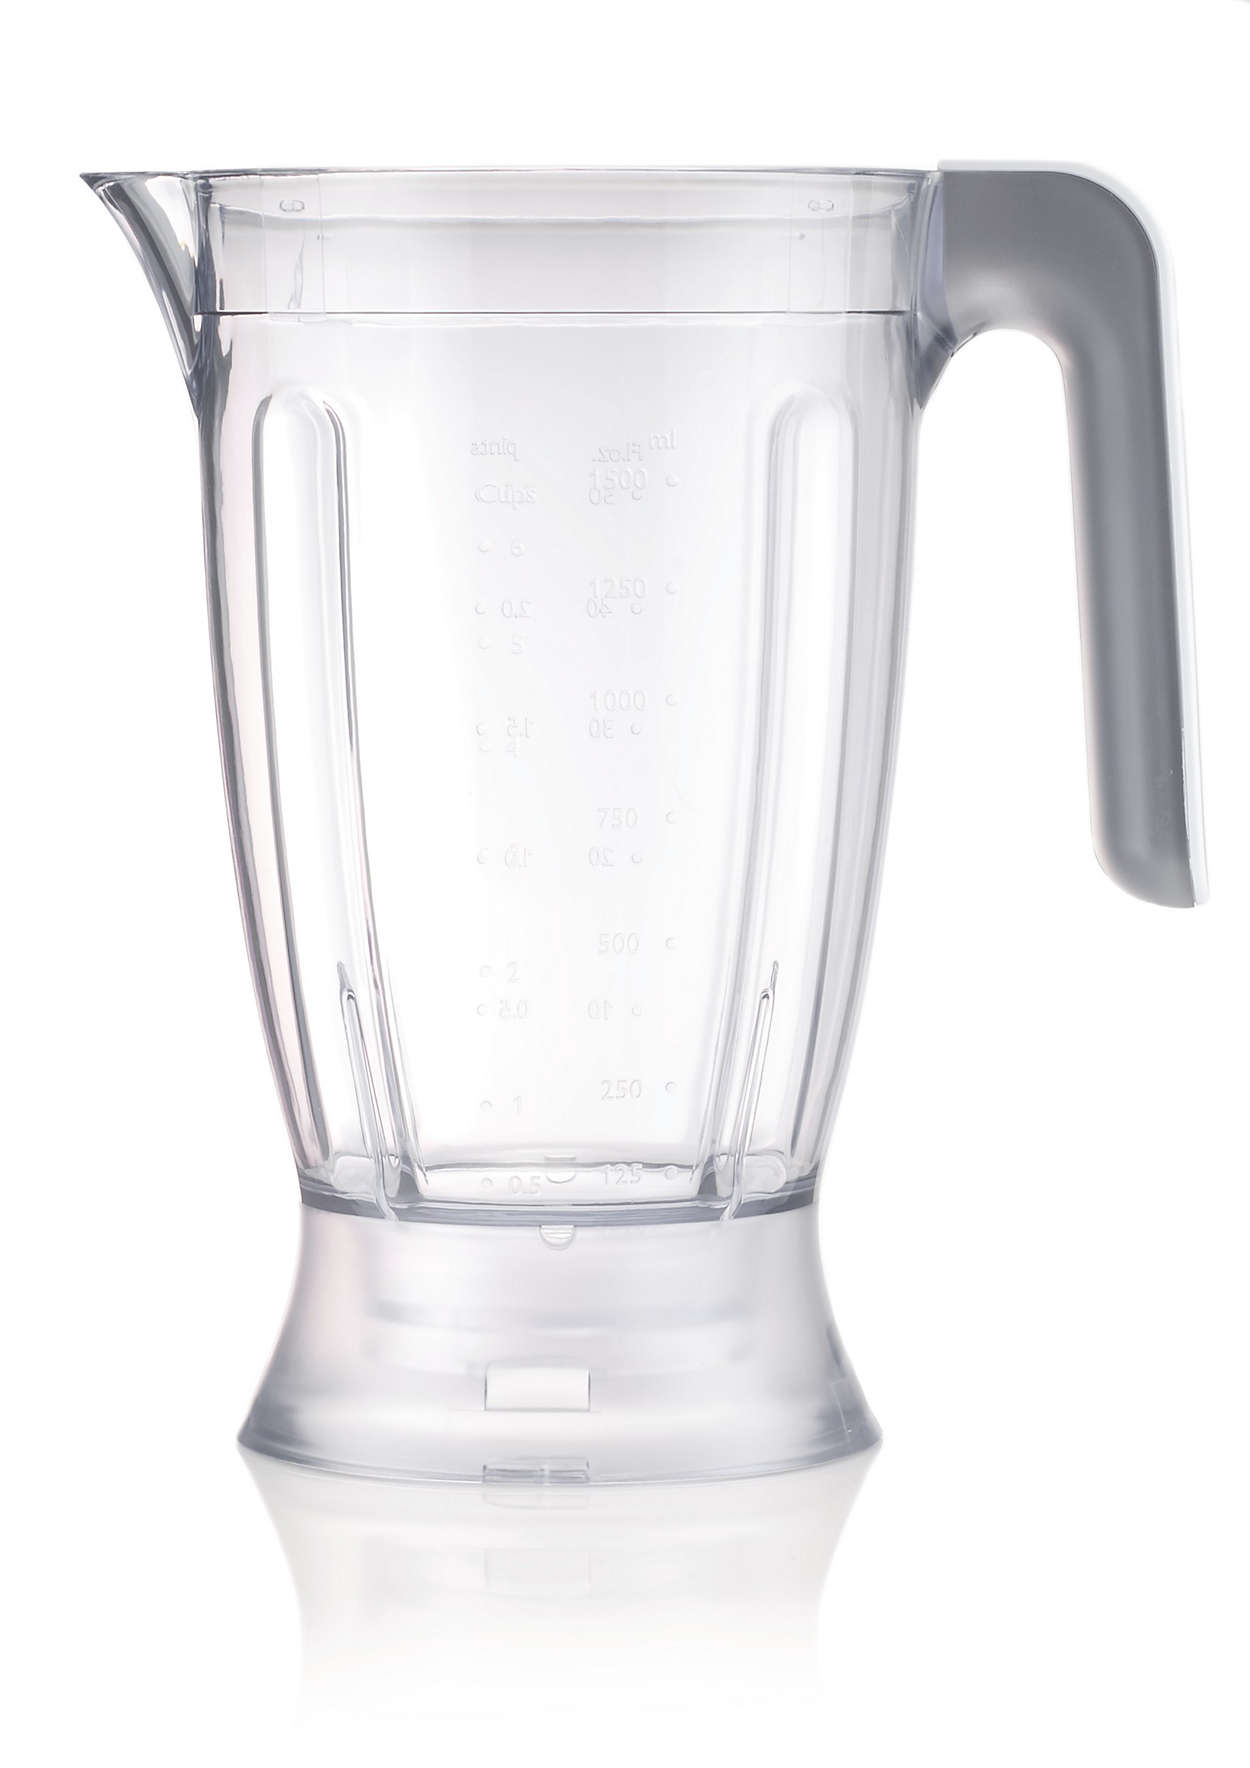 Blender beaker for food processor